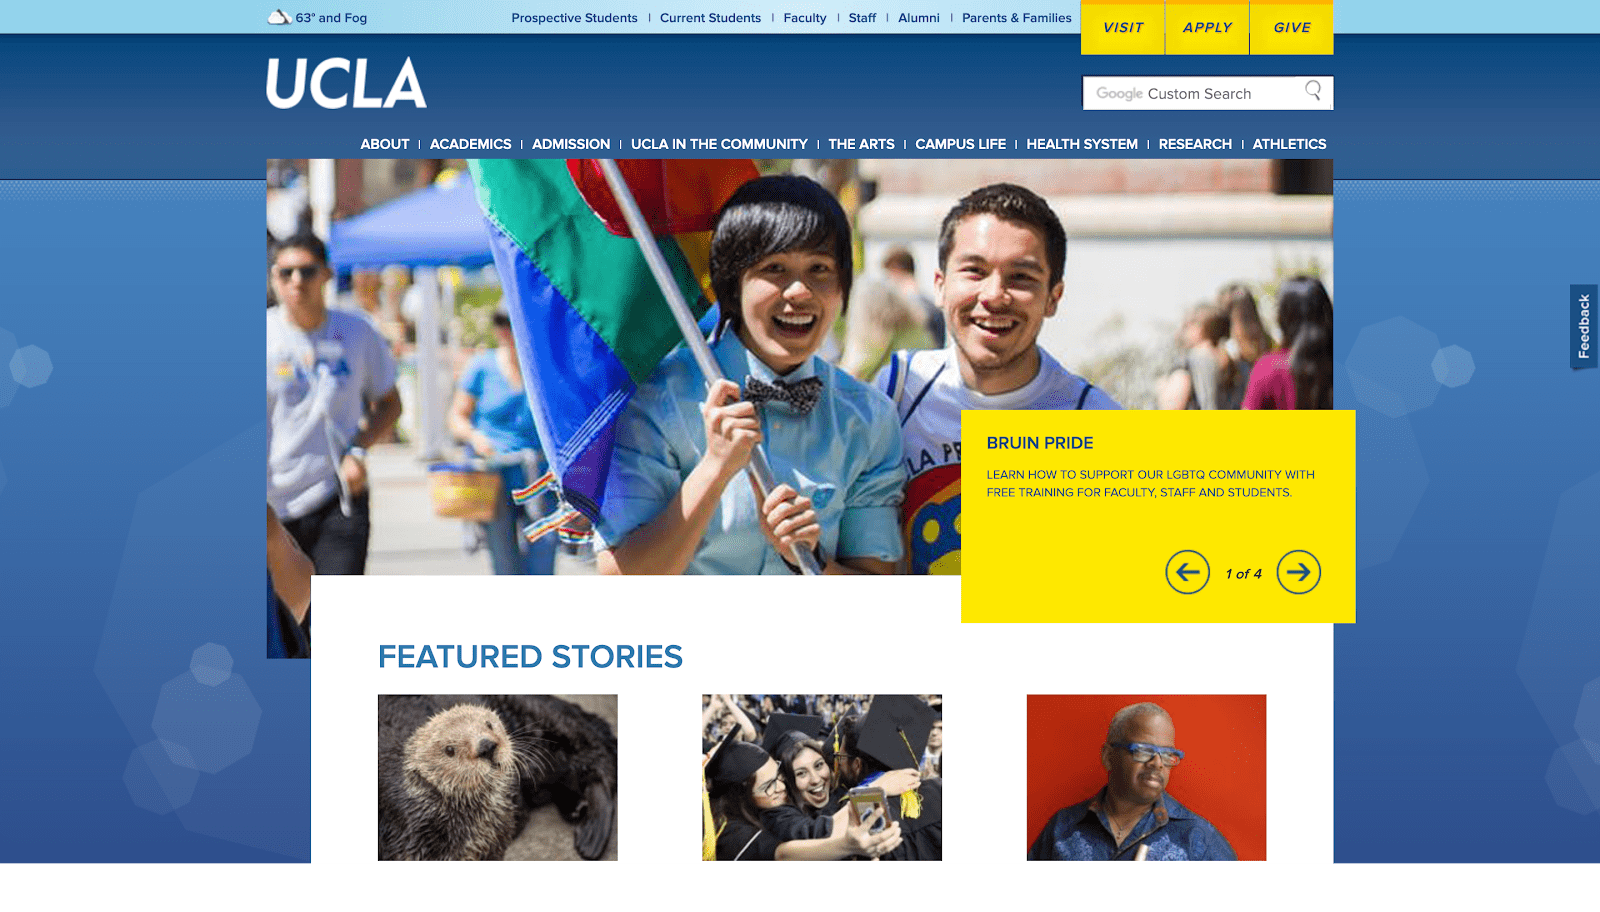 UCLA website